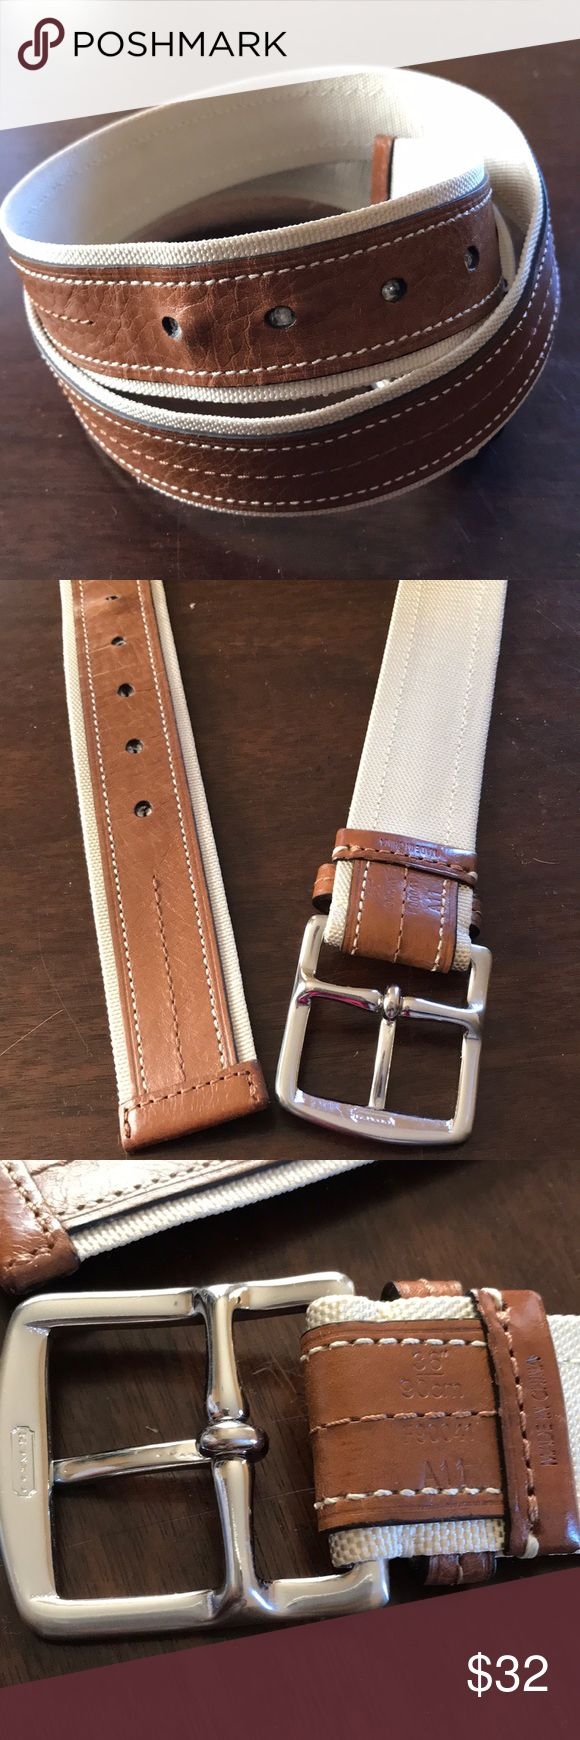 """Men's COACH Belt Very nice men's Coach belt light brown and cream color with silver tone buckle.   Tag Size: 36 Color: Brown/cream Material: Leather and manmade  Condition: Pre owned with minor signs of wear  Approximate measurements  Length: 41"""" to buckle  Width: 1.5"""" Coach Accessories Belts"""